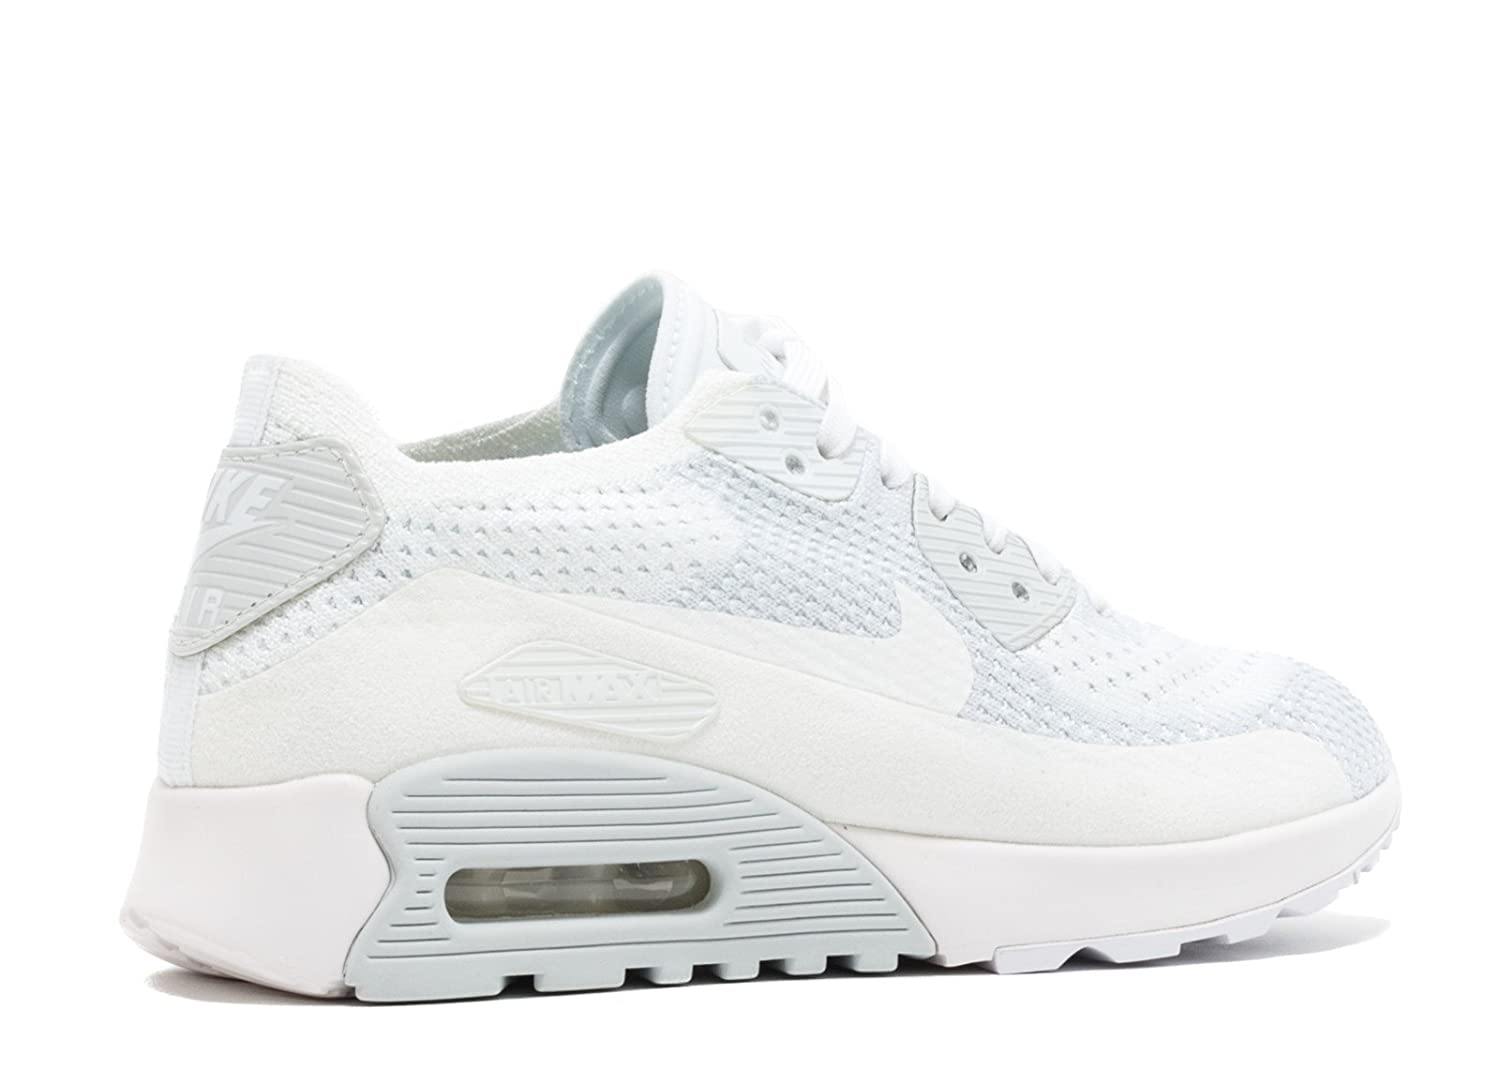 Nike Women's W Air Max 90 Ultra 2.0 Flyknit, Midnight Fog